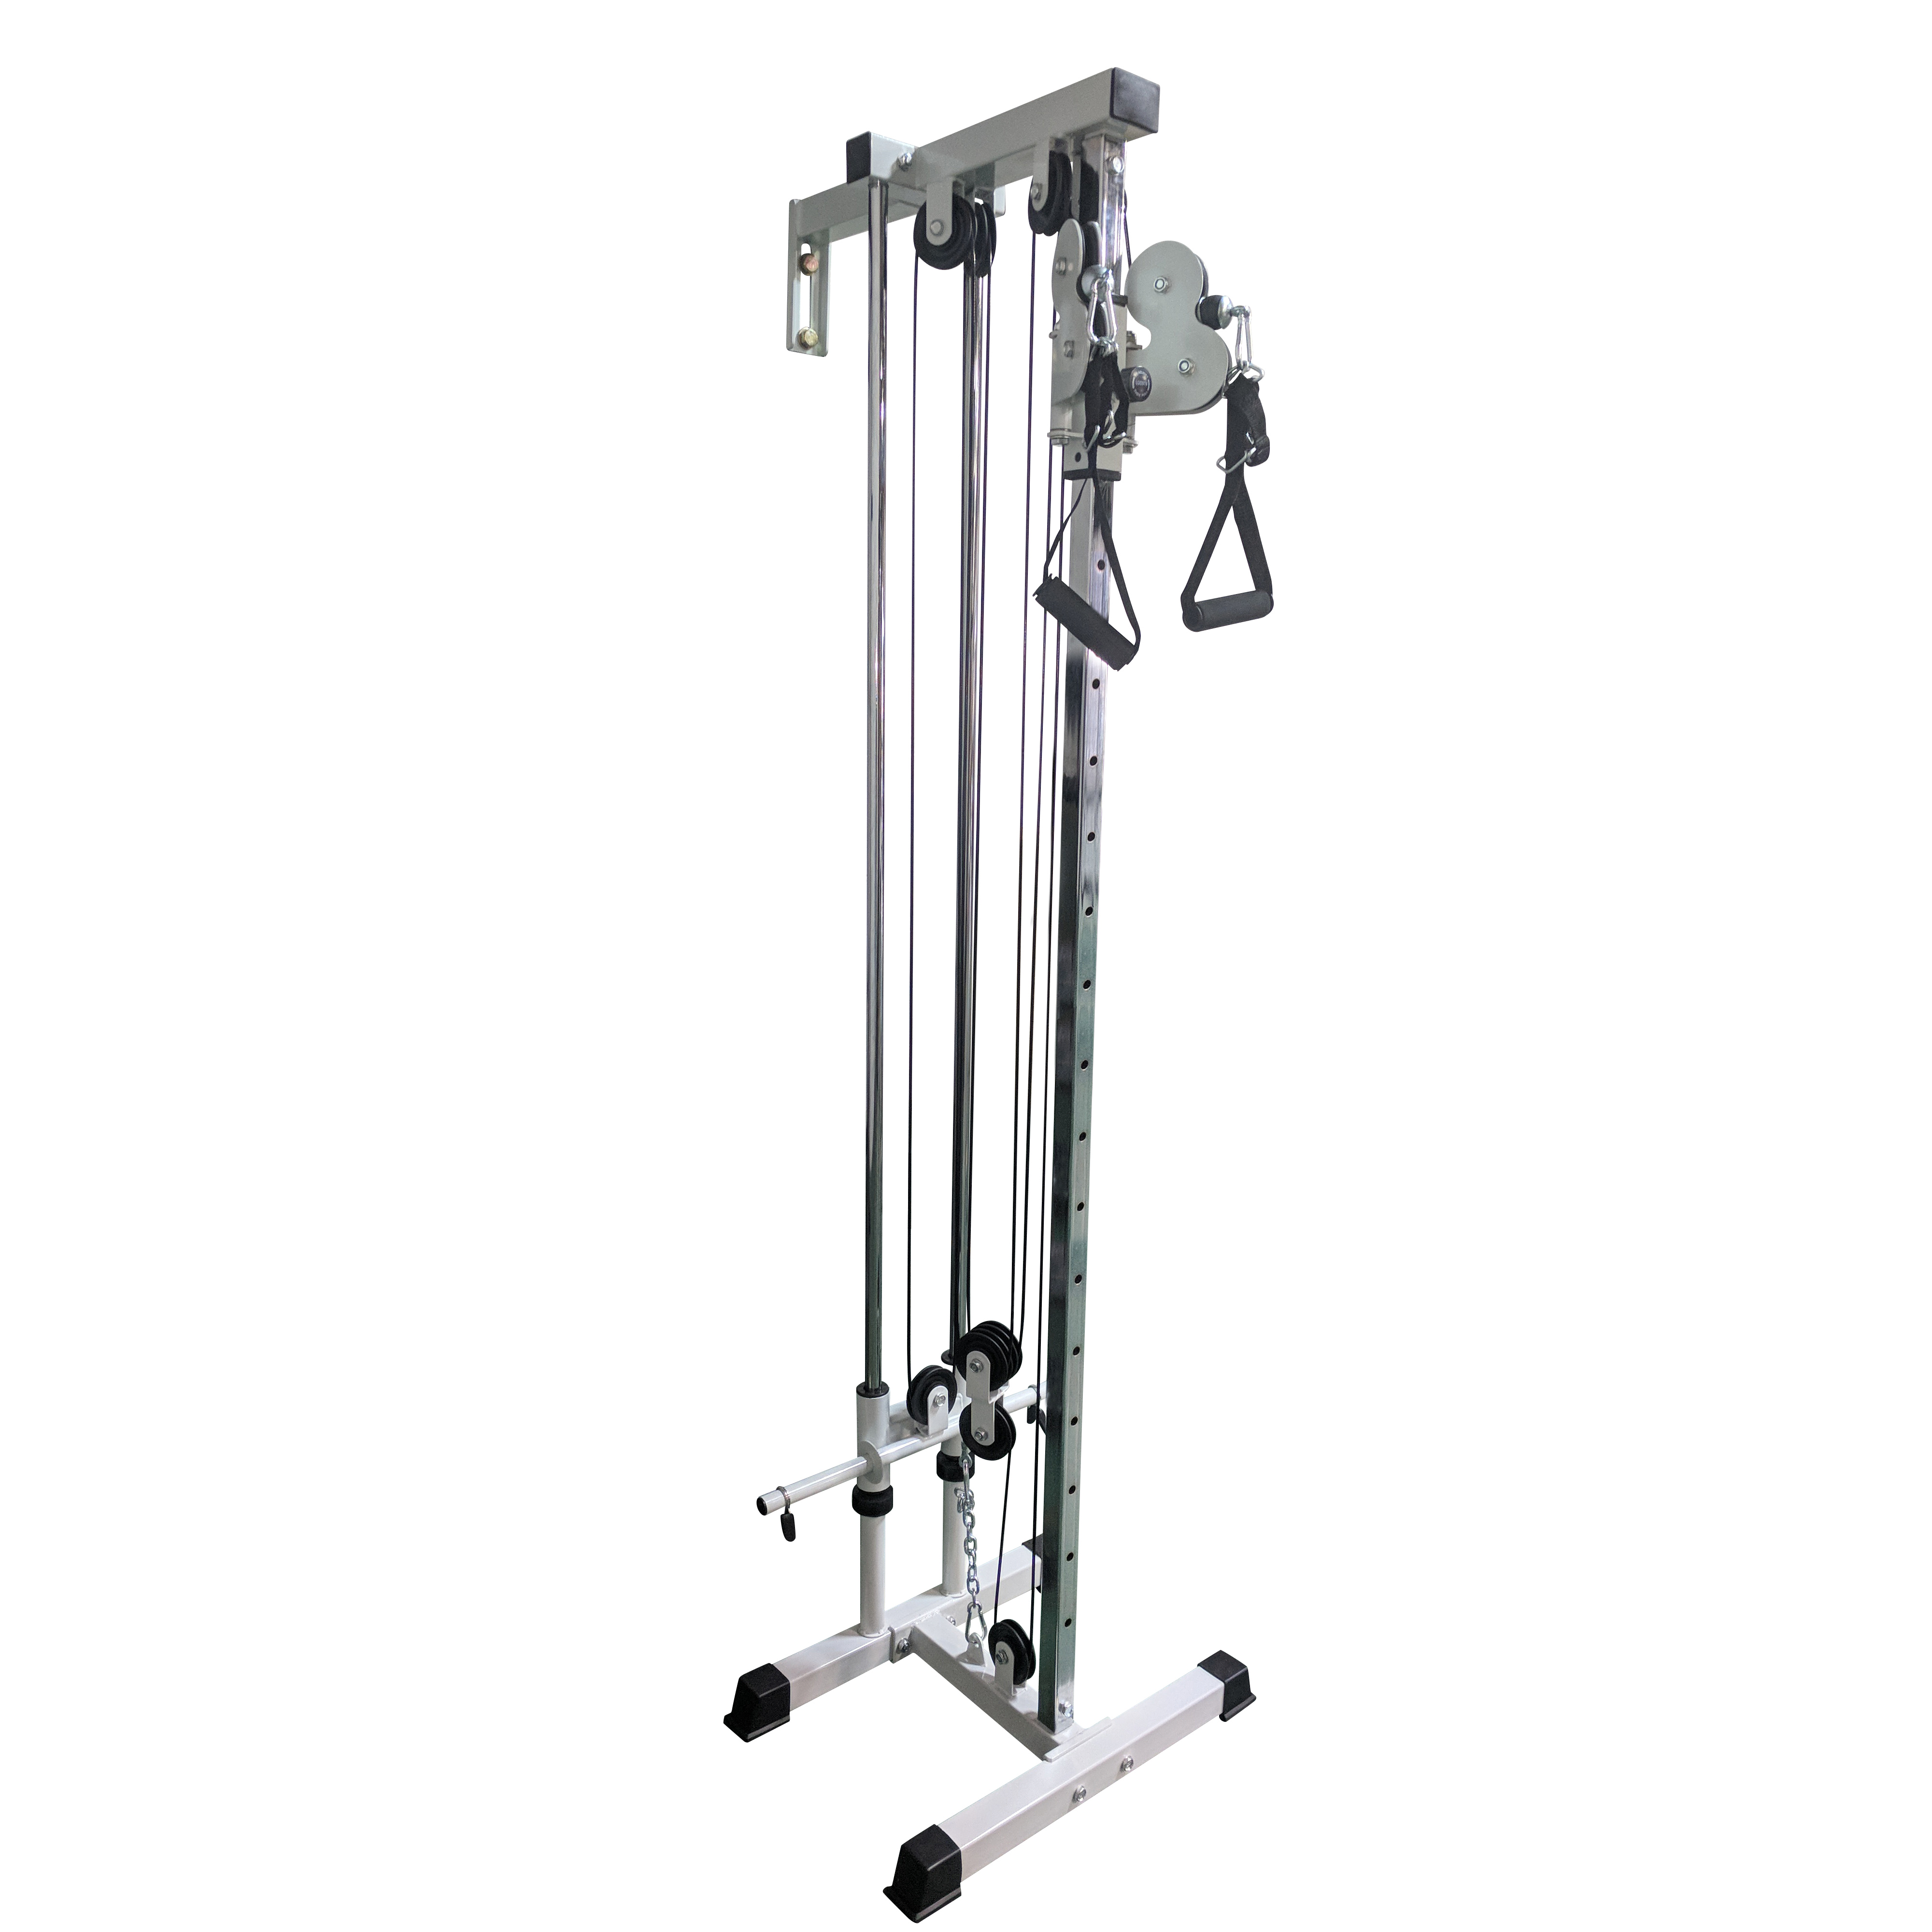 Titan Wall Mounted Pulley Tower by Titan Fitness